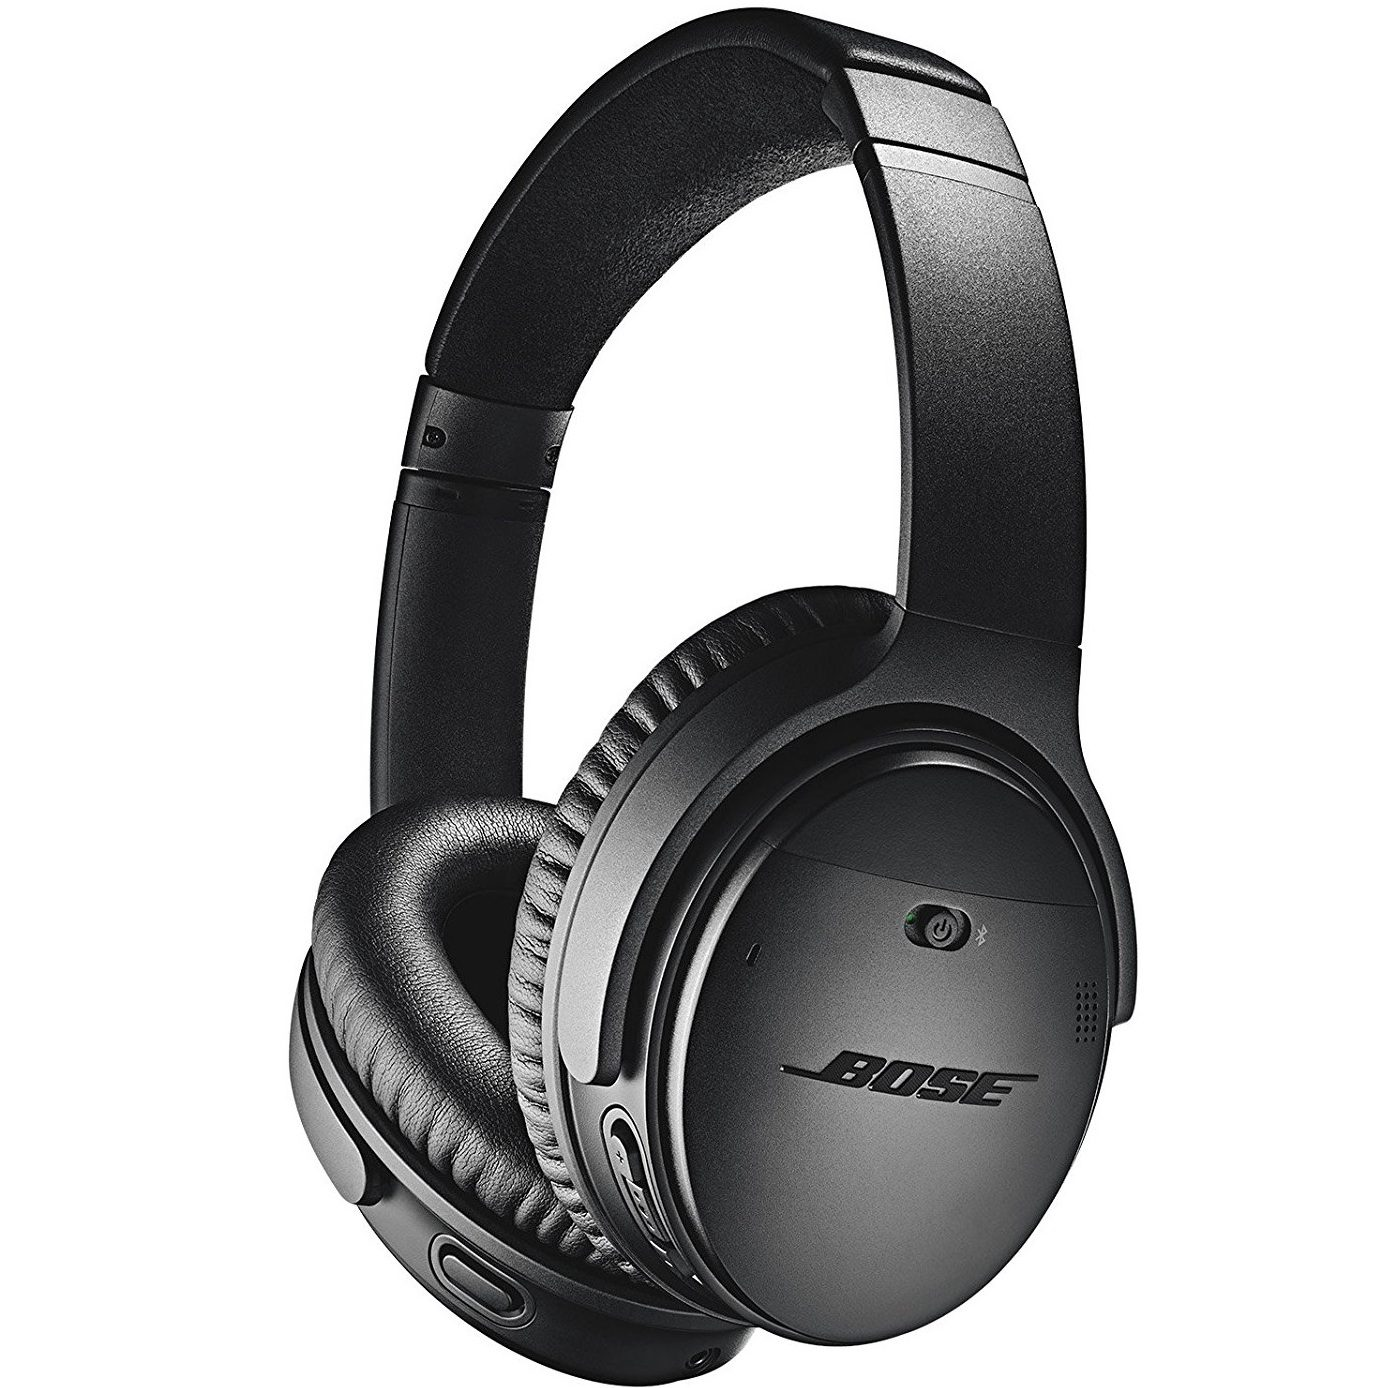 Image 1 : [Test] QuietComfort 35 II : que vaut le casque antibruit et intelligent de Bose ?